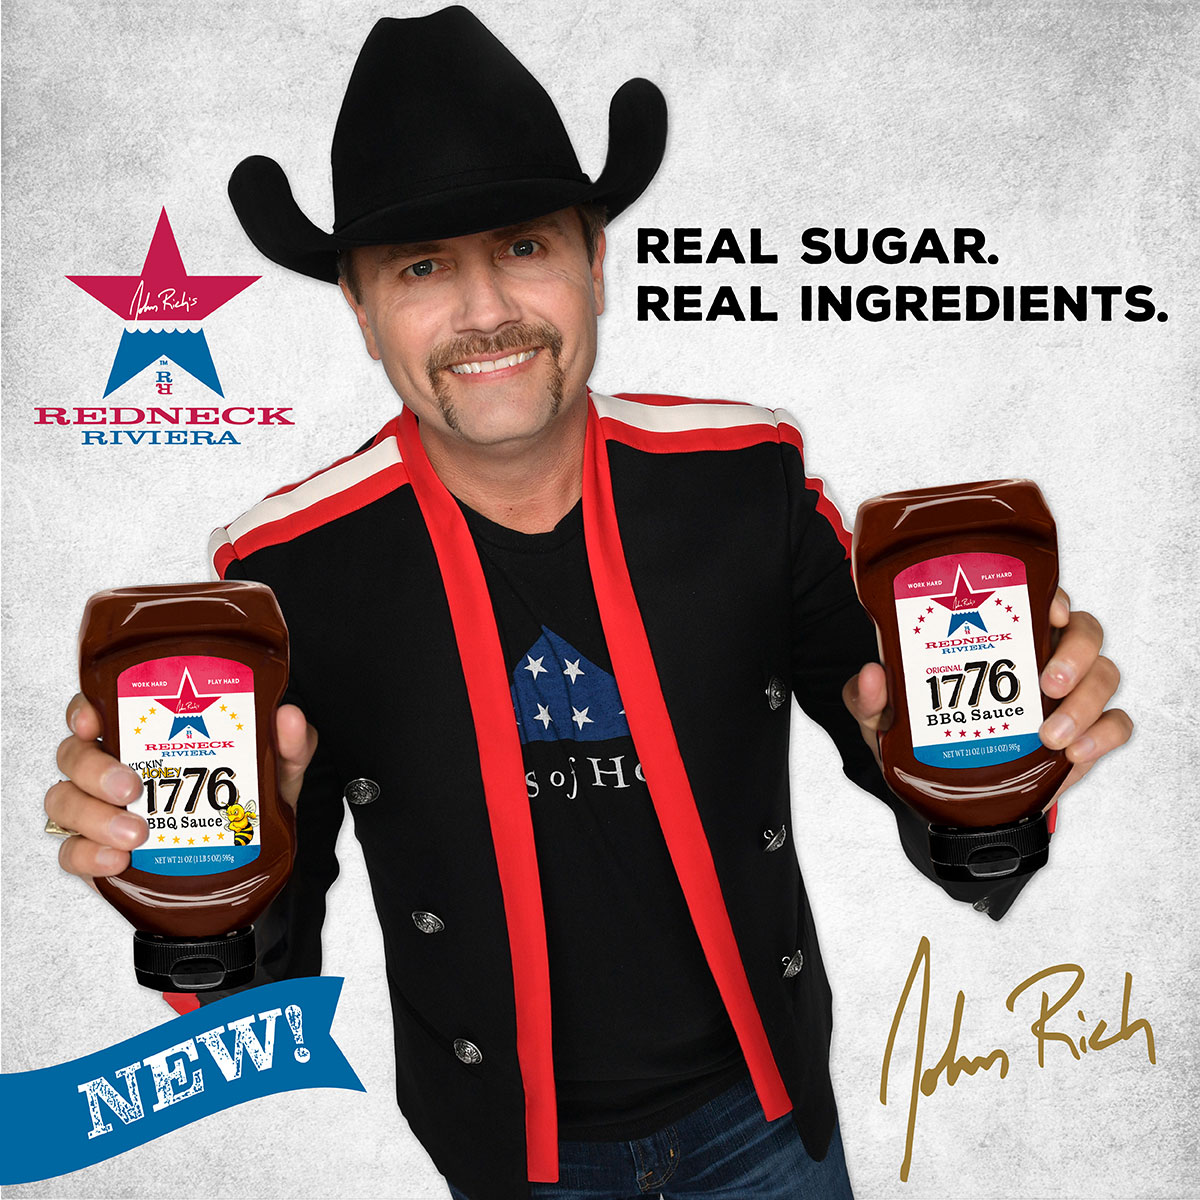 Image of John Rich holding 1776 BBQ Sauce made by Red Gold Tomatoes with JR's autograph and Redneck Riviera logo made with real sugar